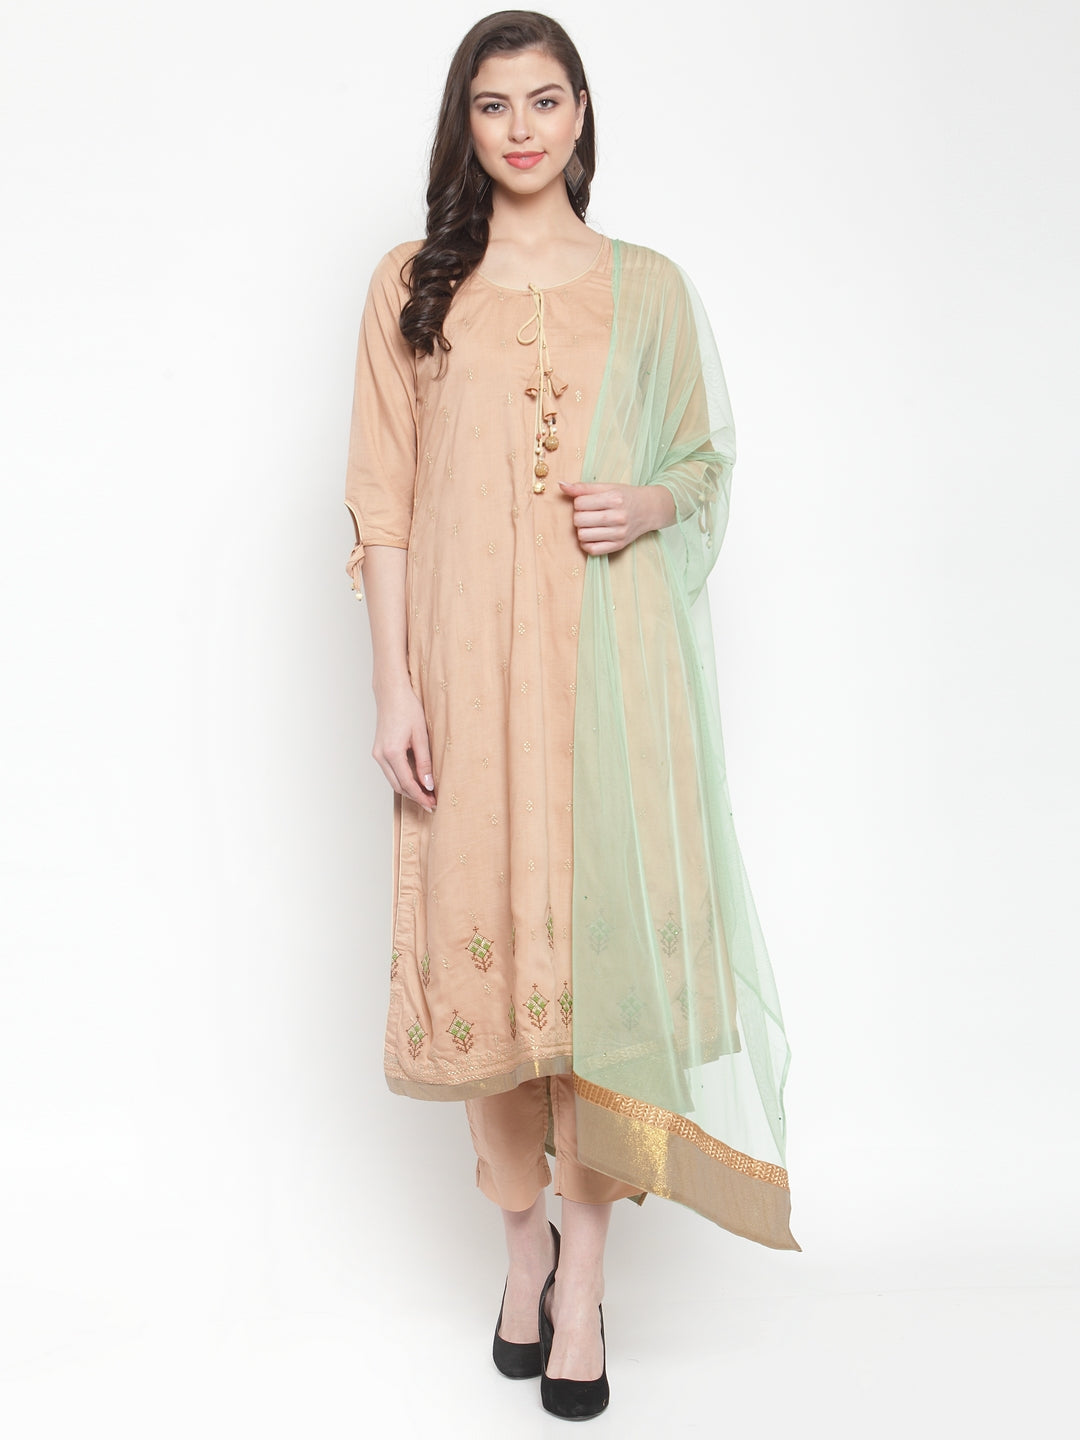 Aujjessa Beige Embroidered Kurta Trouser Suit Set